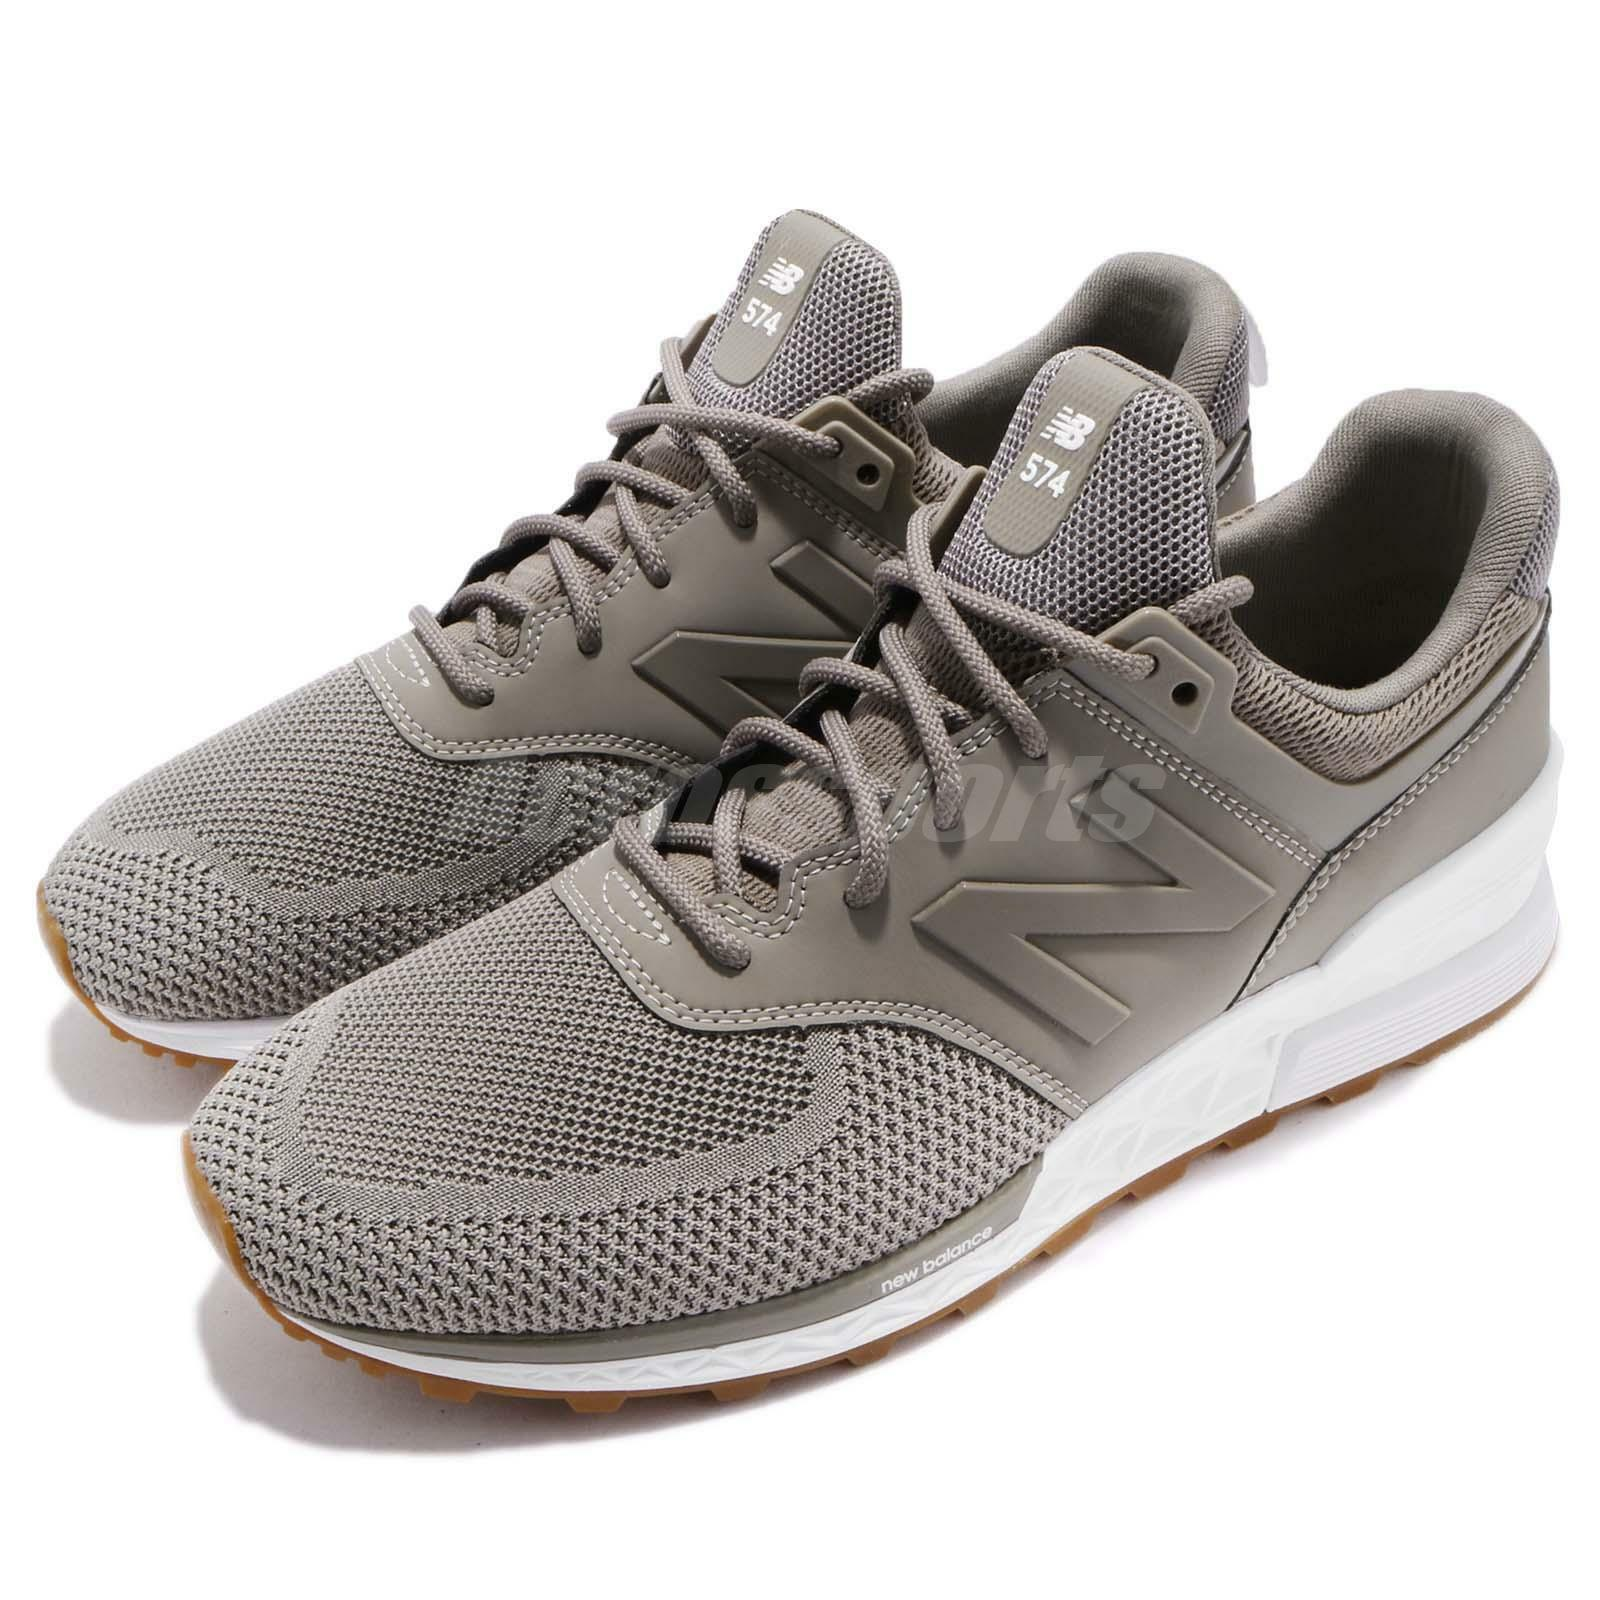 New Balance MS574EMG D 574 Gris Tan blanc  Hommes Running Chaussures Baskets MS574EMGD